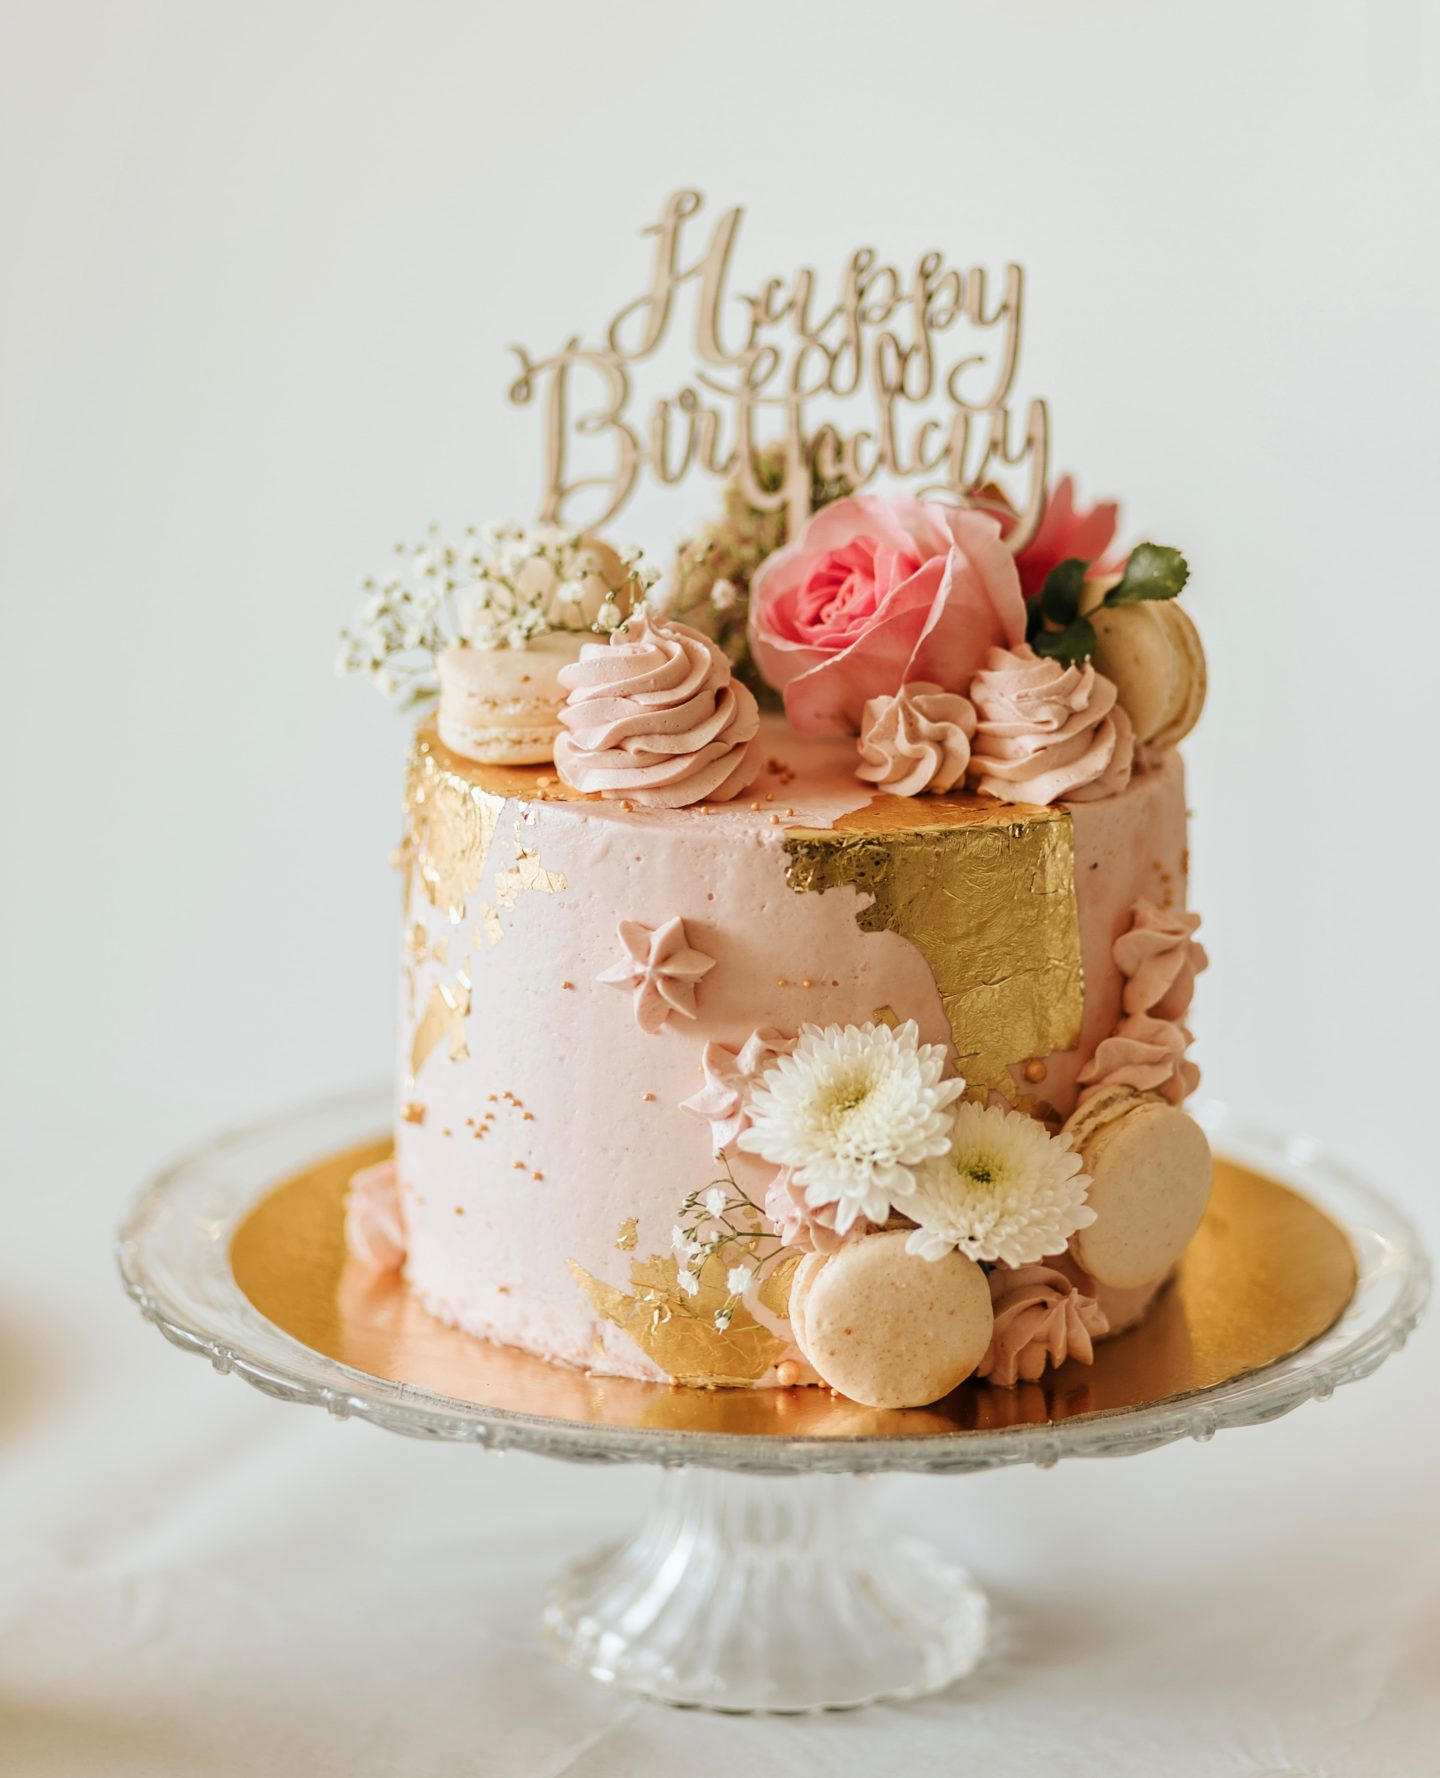 gâteau pinterest, gâteau princesse, happy birthday.